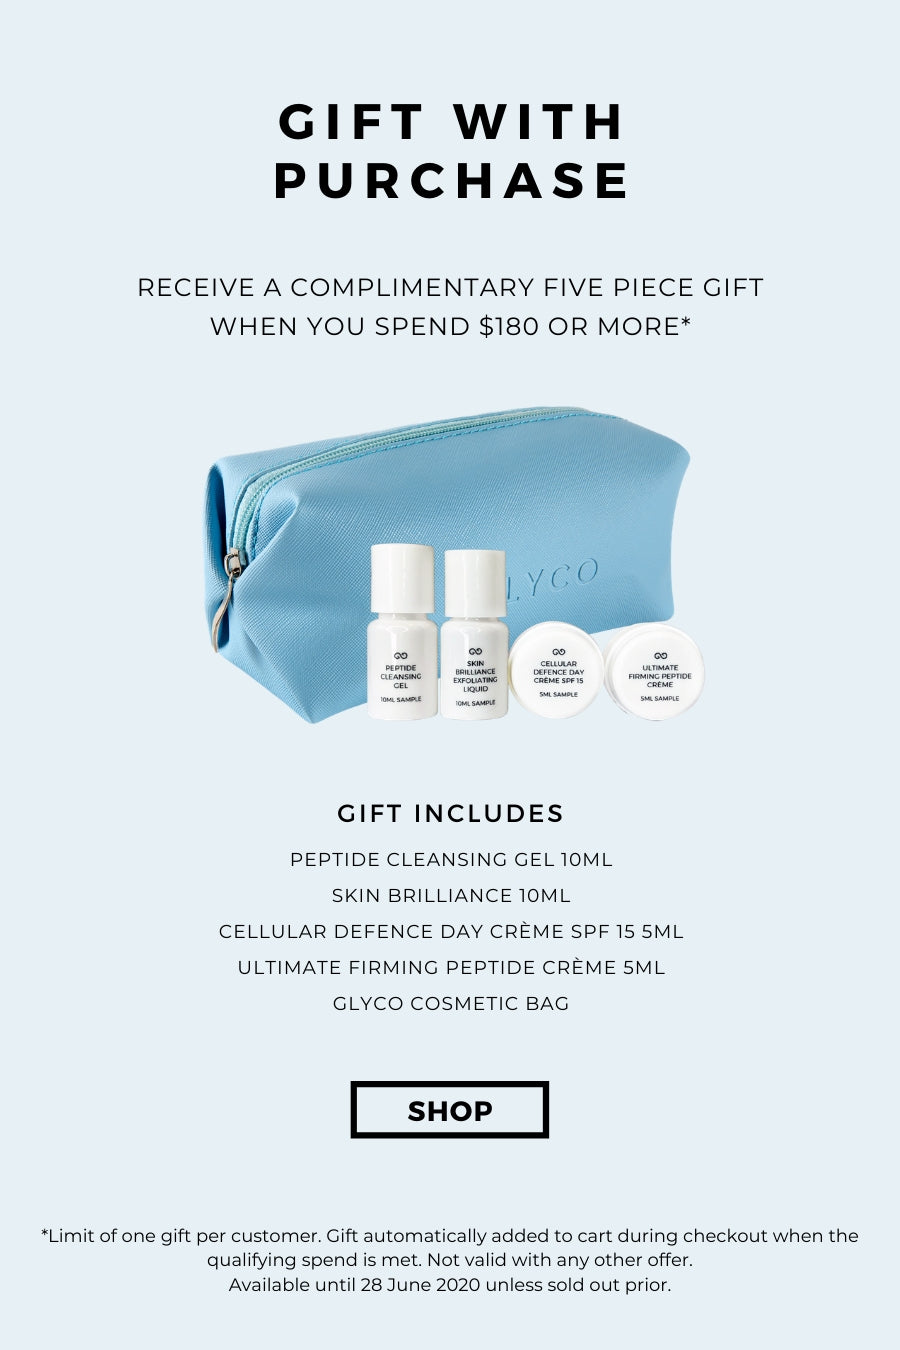 Glyco gift with purchase